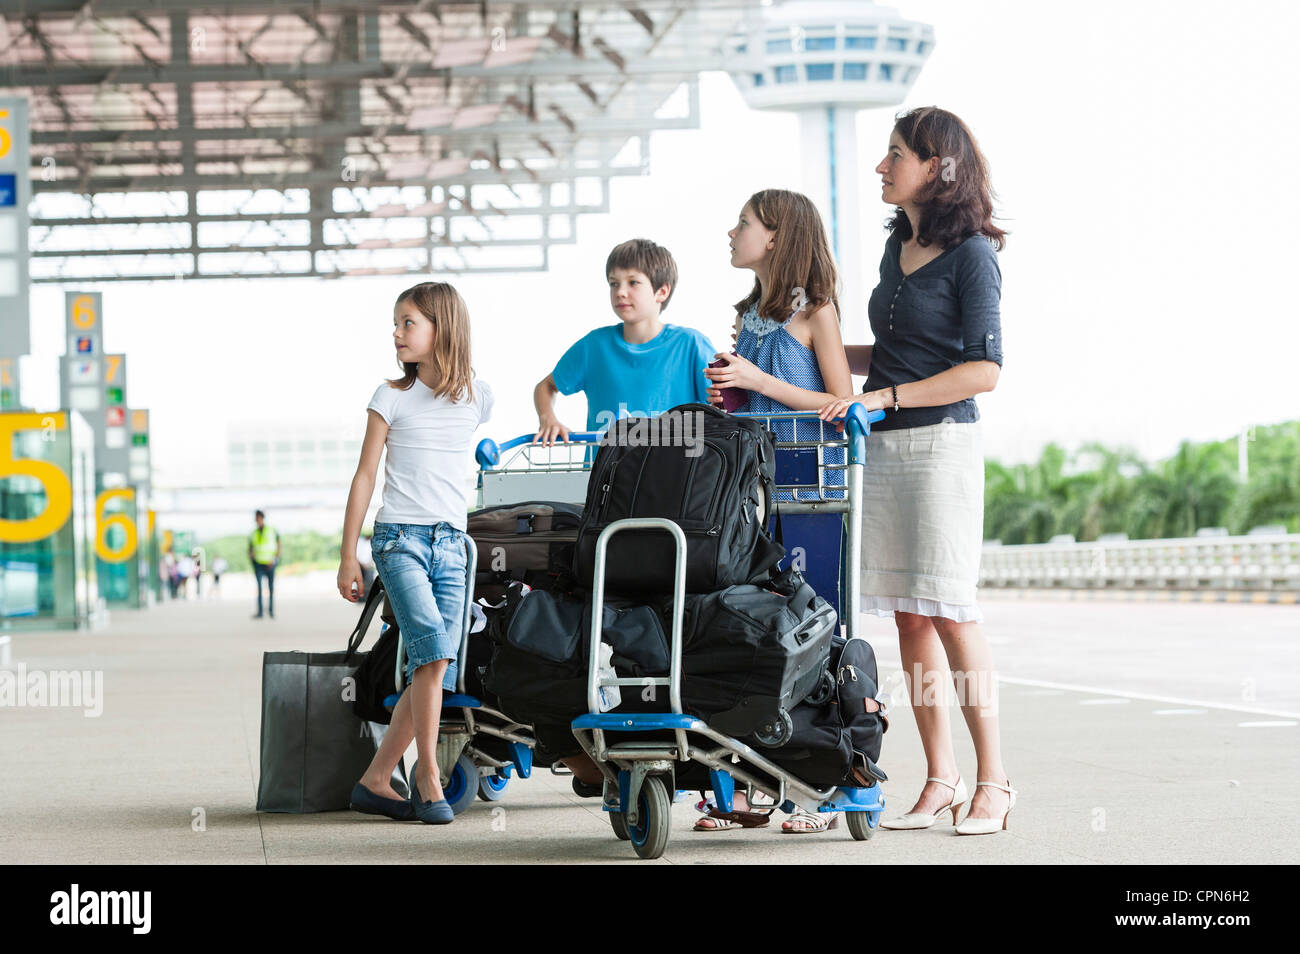 Family standing outside of airport with luggage - Stock Image